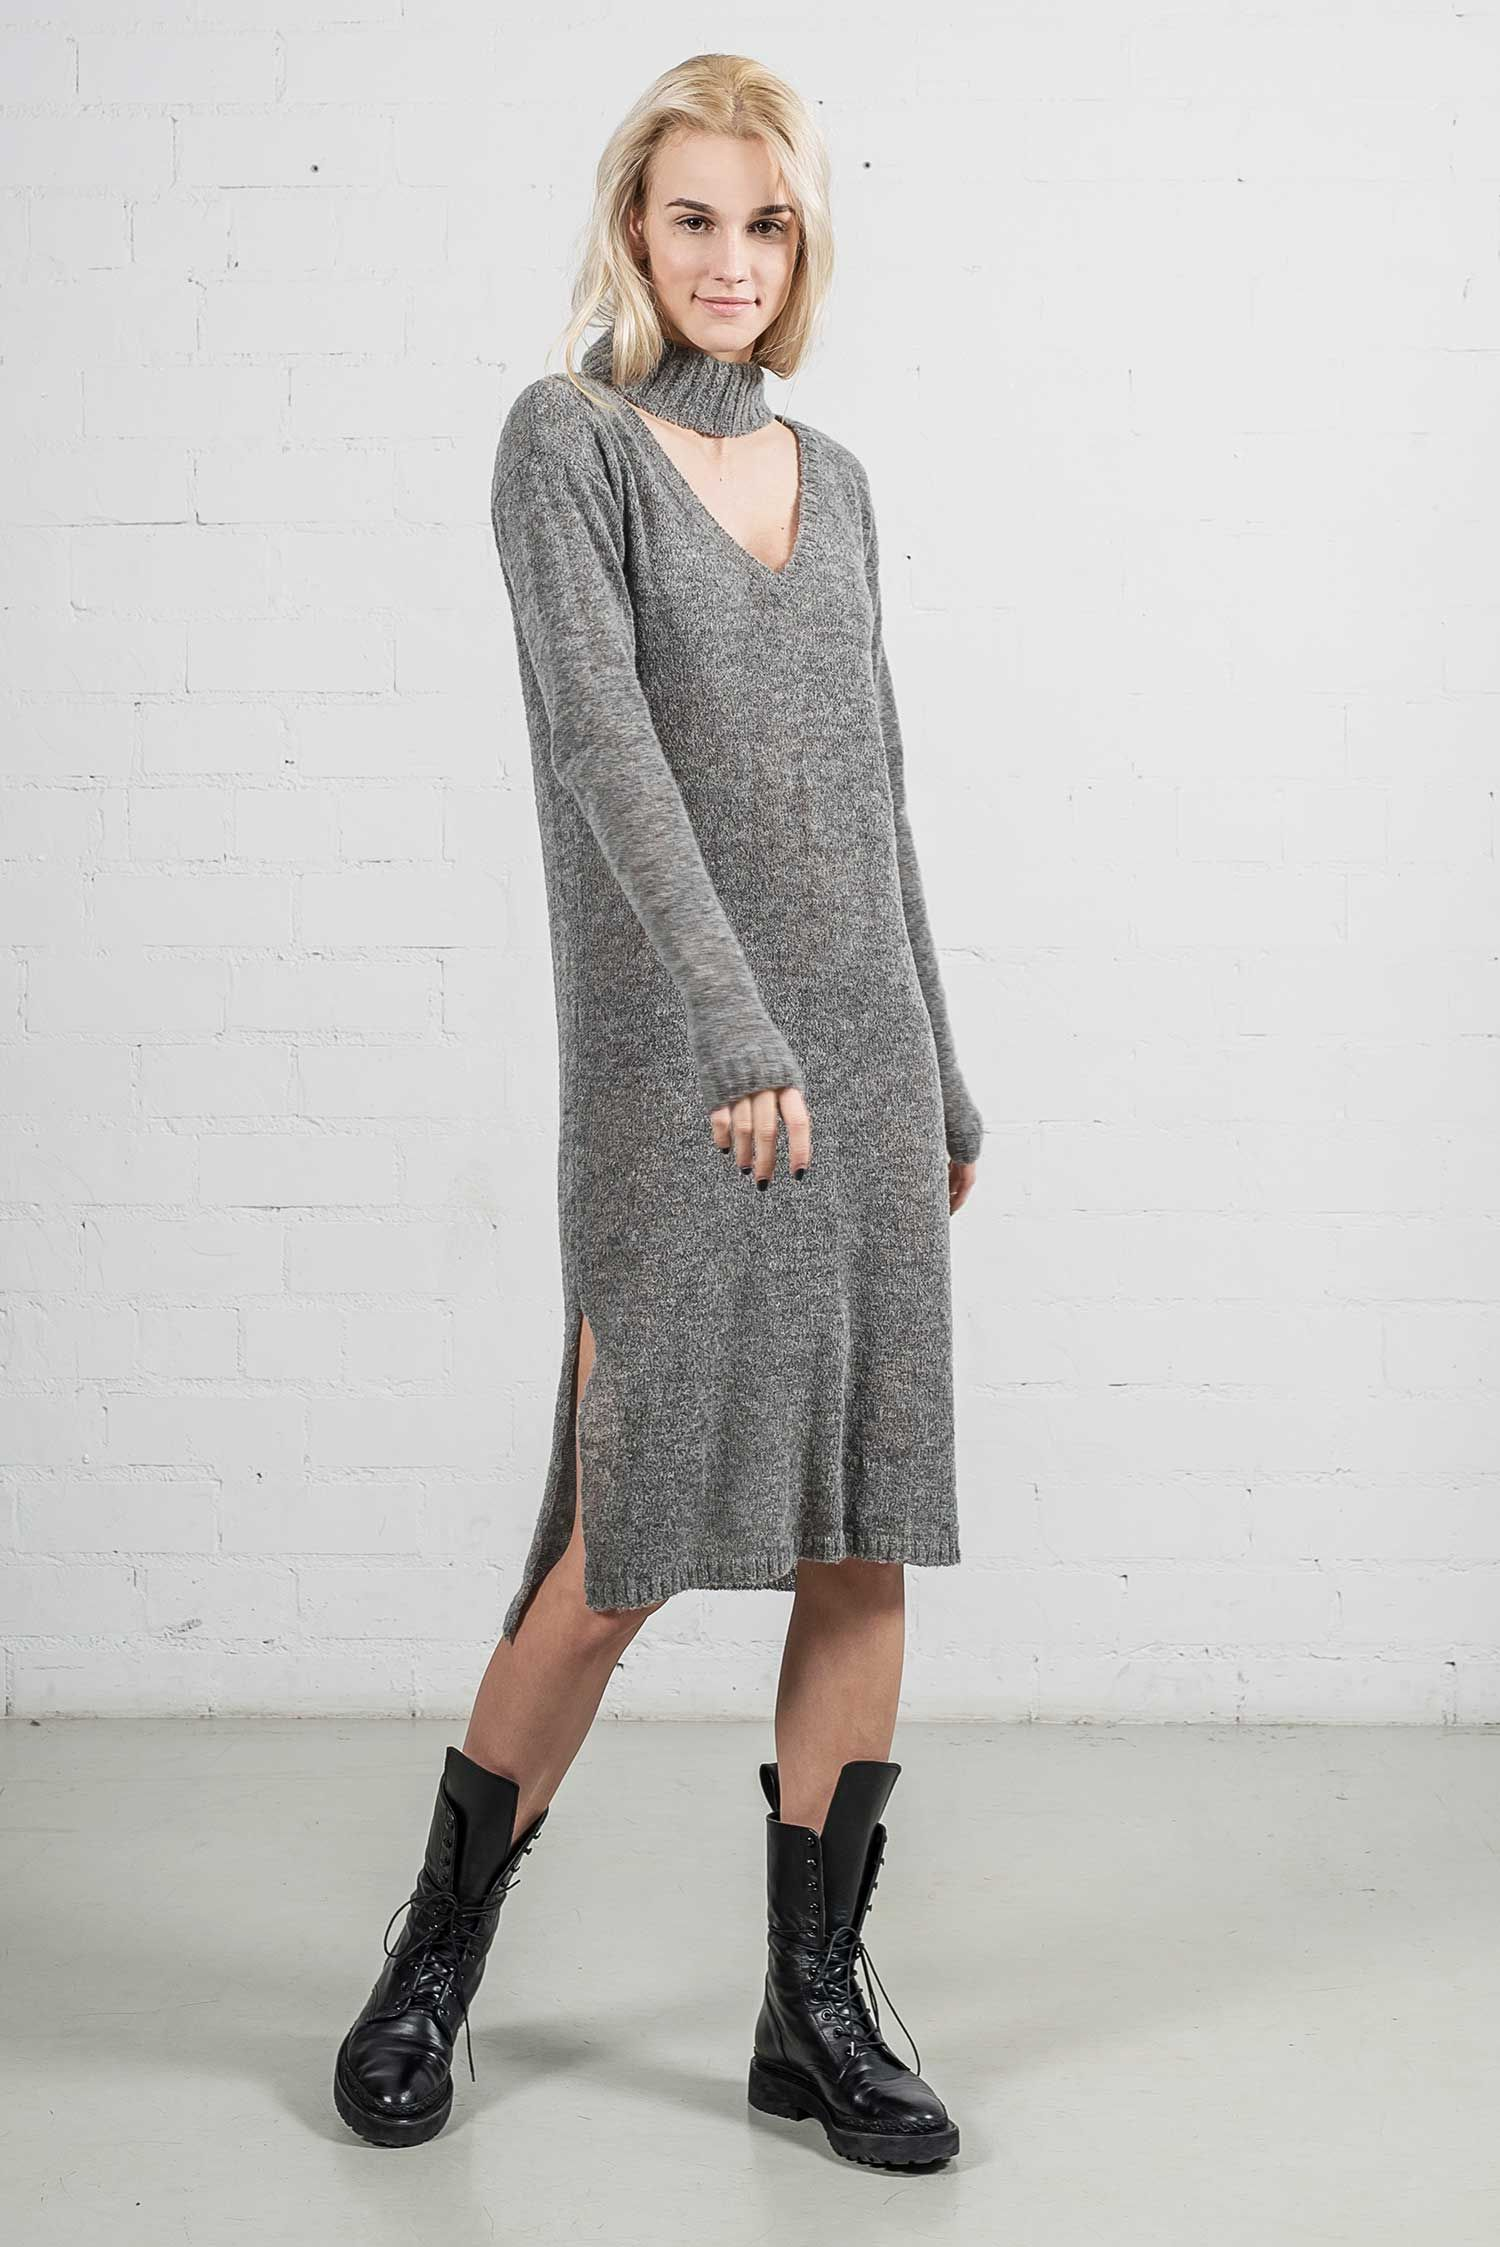 bc4b73caa8d Vestito mid length sweater dress has a straight silhouette and is knitted  from the finest alpaca